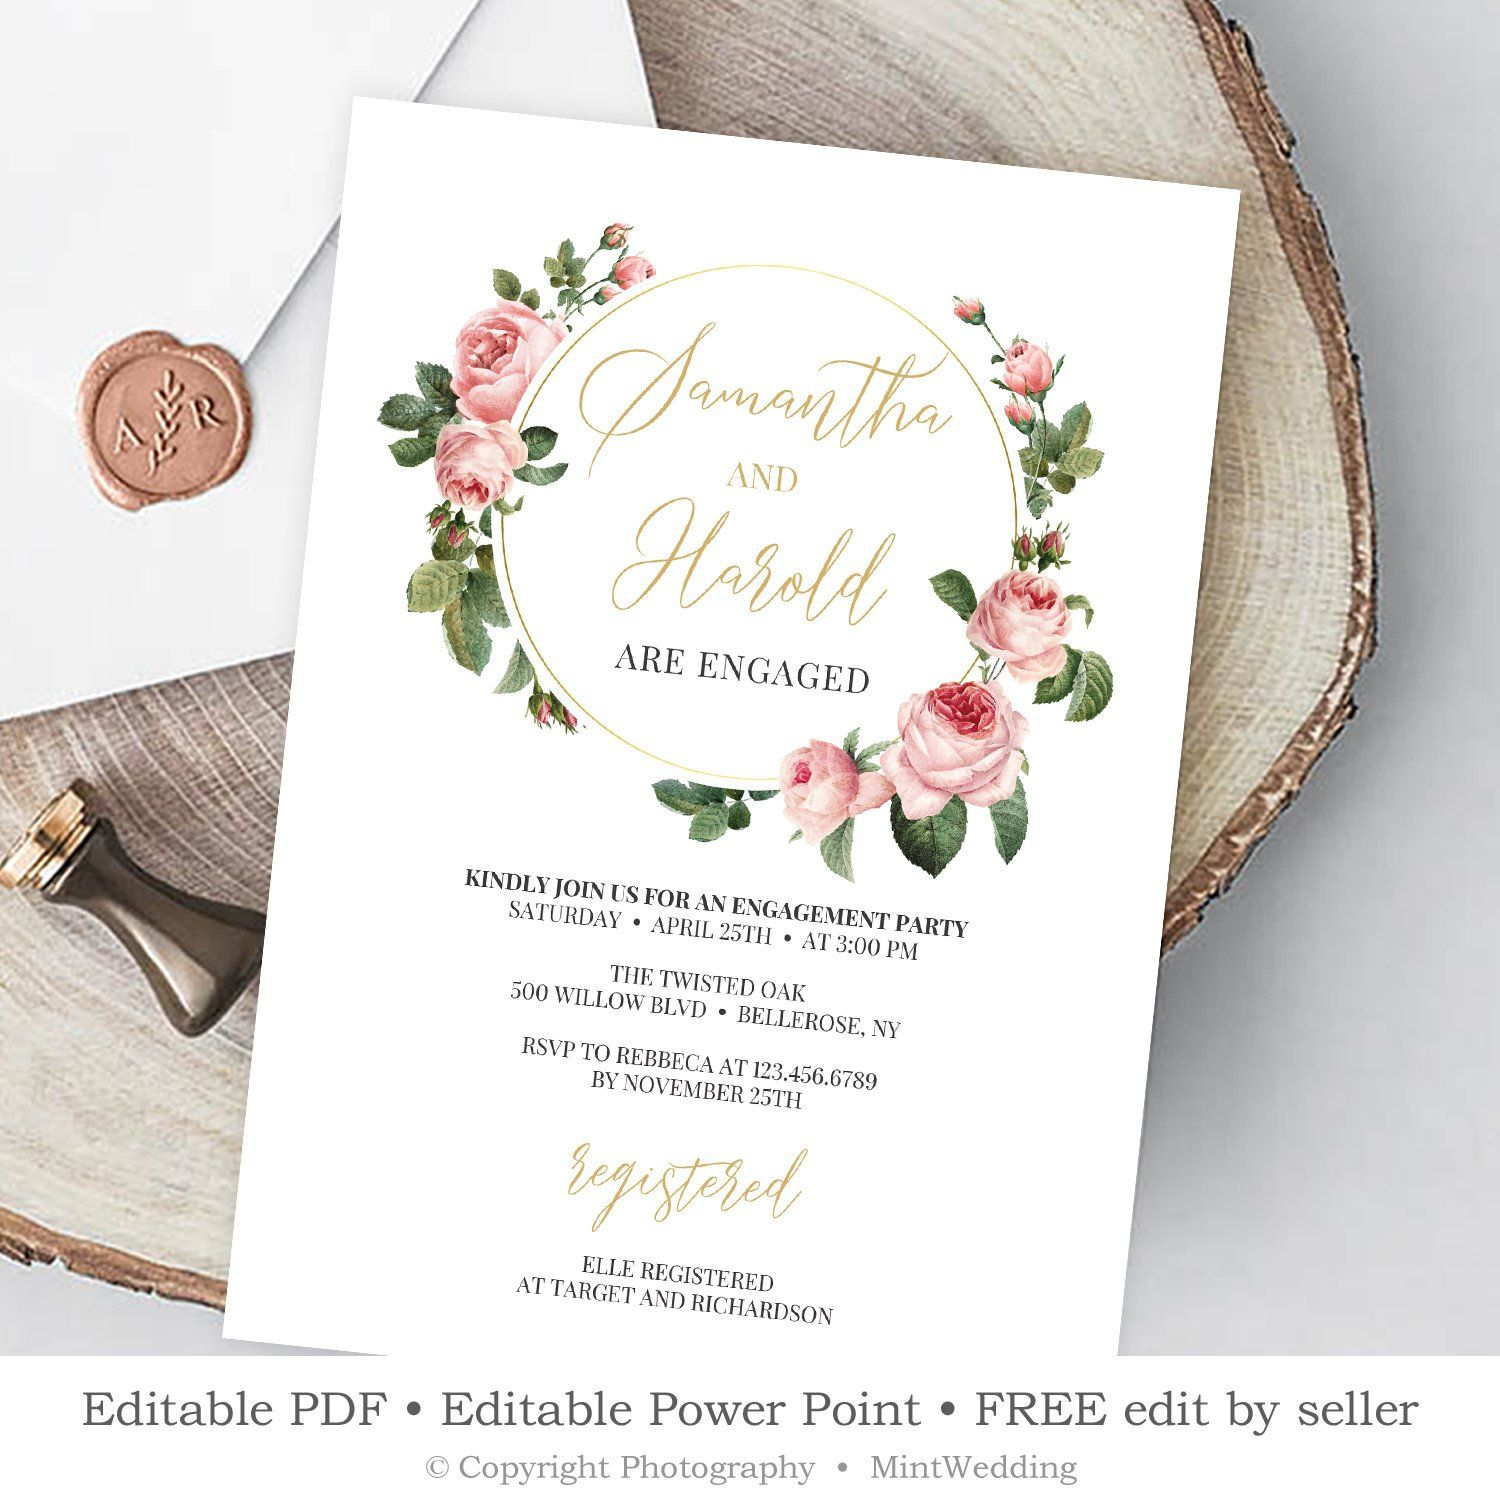 Blush Roses Engagement Invitation Editable Pink Free Engagement Party Invitations Templates Engagement Party Invitations Instant Download Wedding Invitations